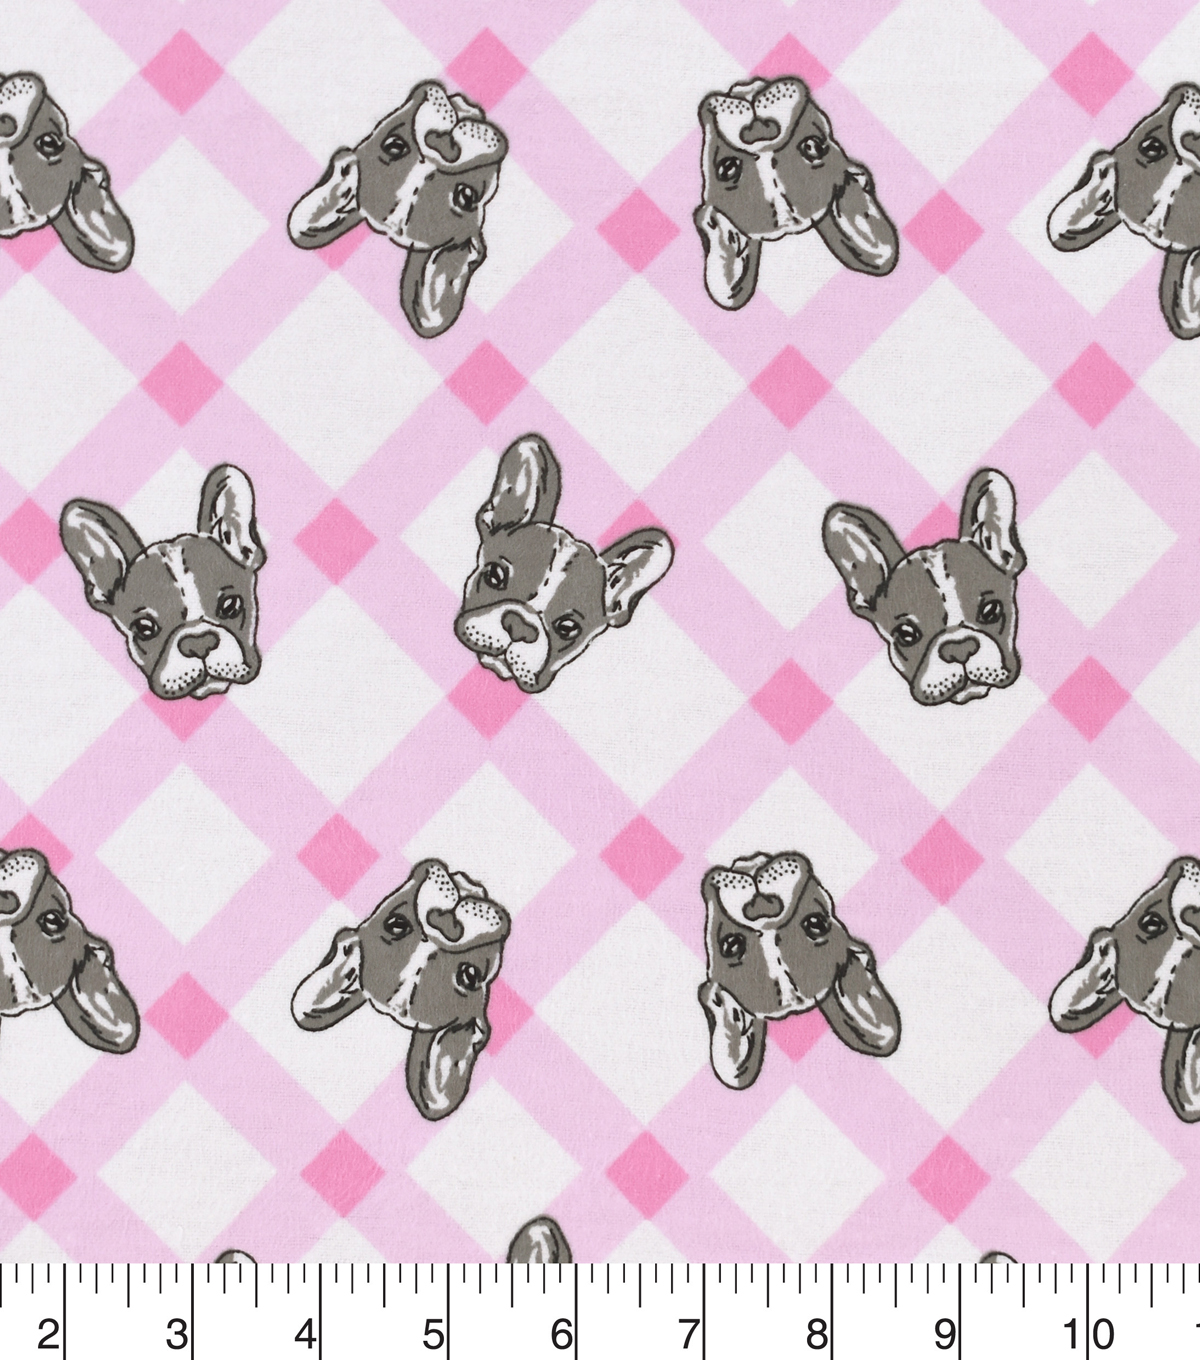 Snuggle Flannel Fabric -French Bulldogs on Plaid